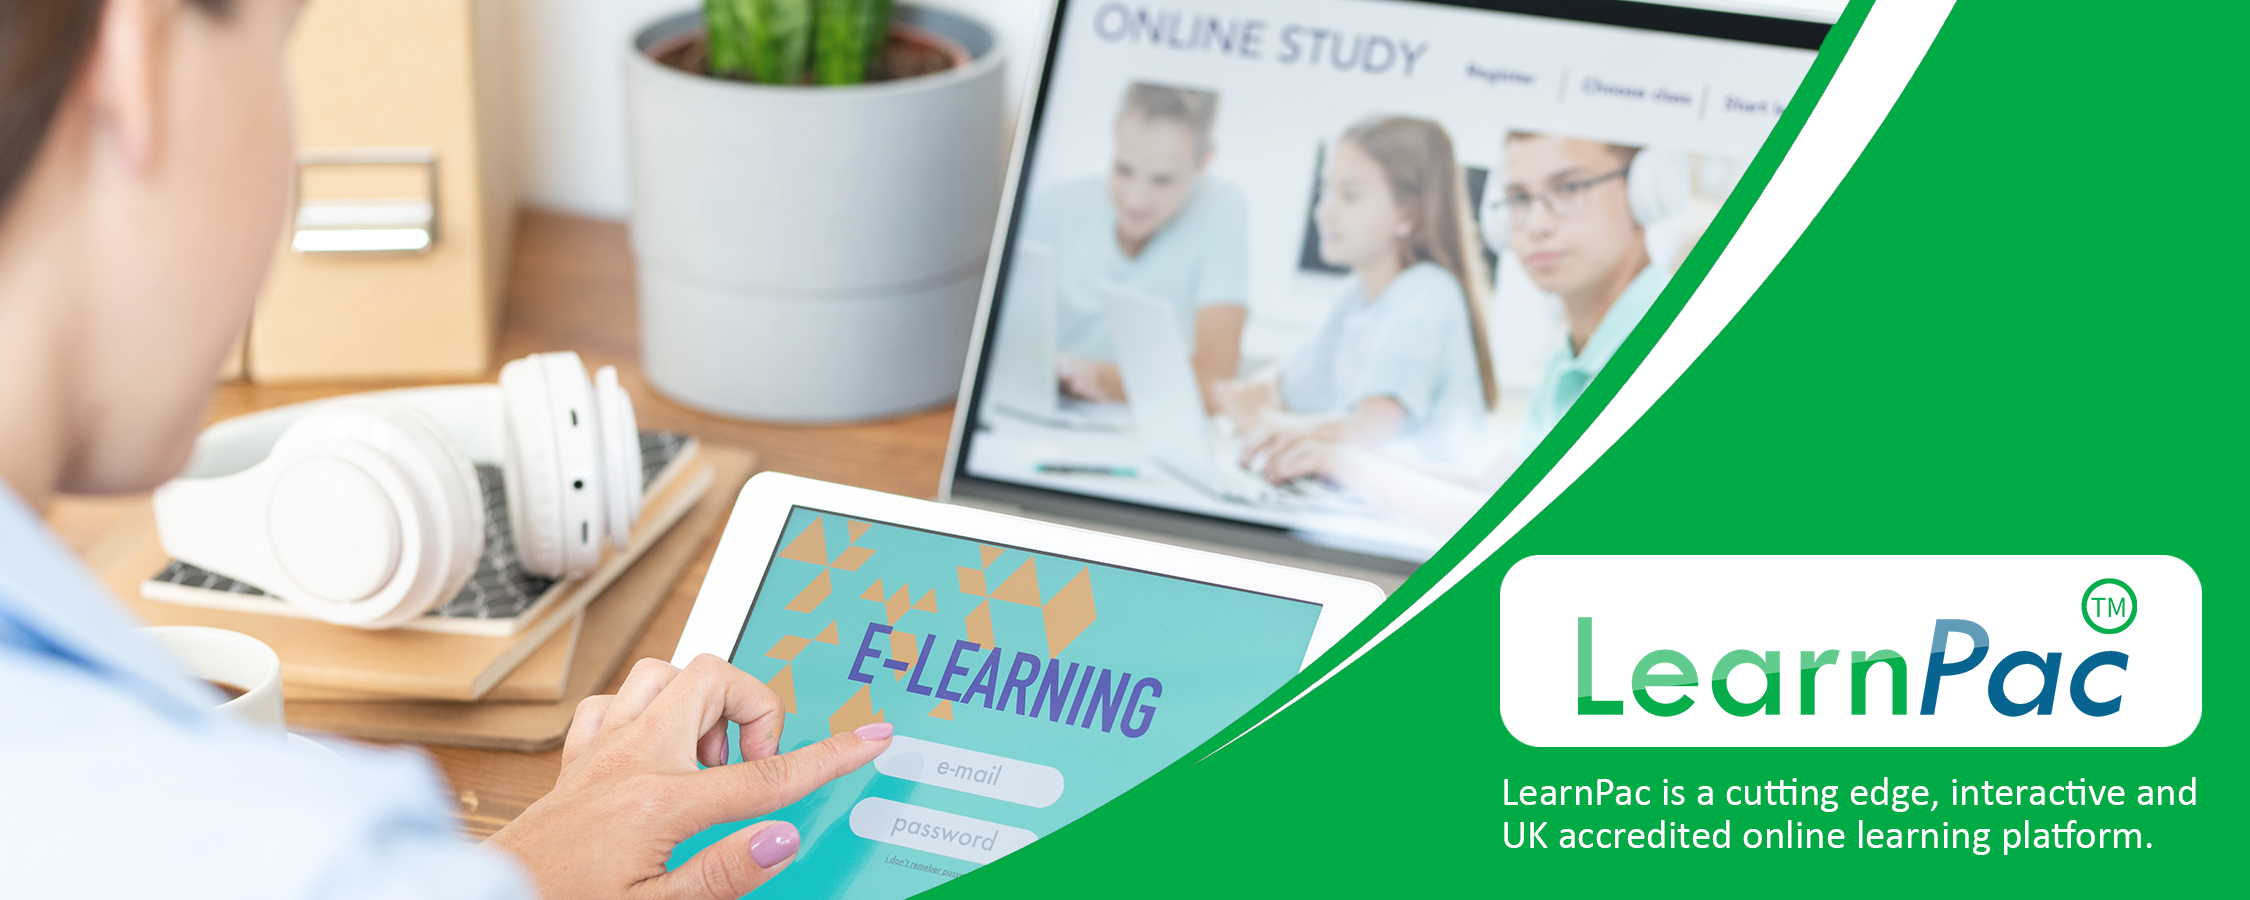 Developing a Lunch and Learn - Online Learning Courses - E-Learning Courses - LearnPac Systems UK -